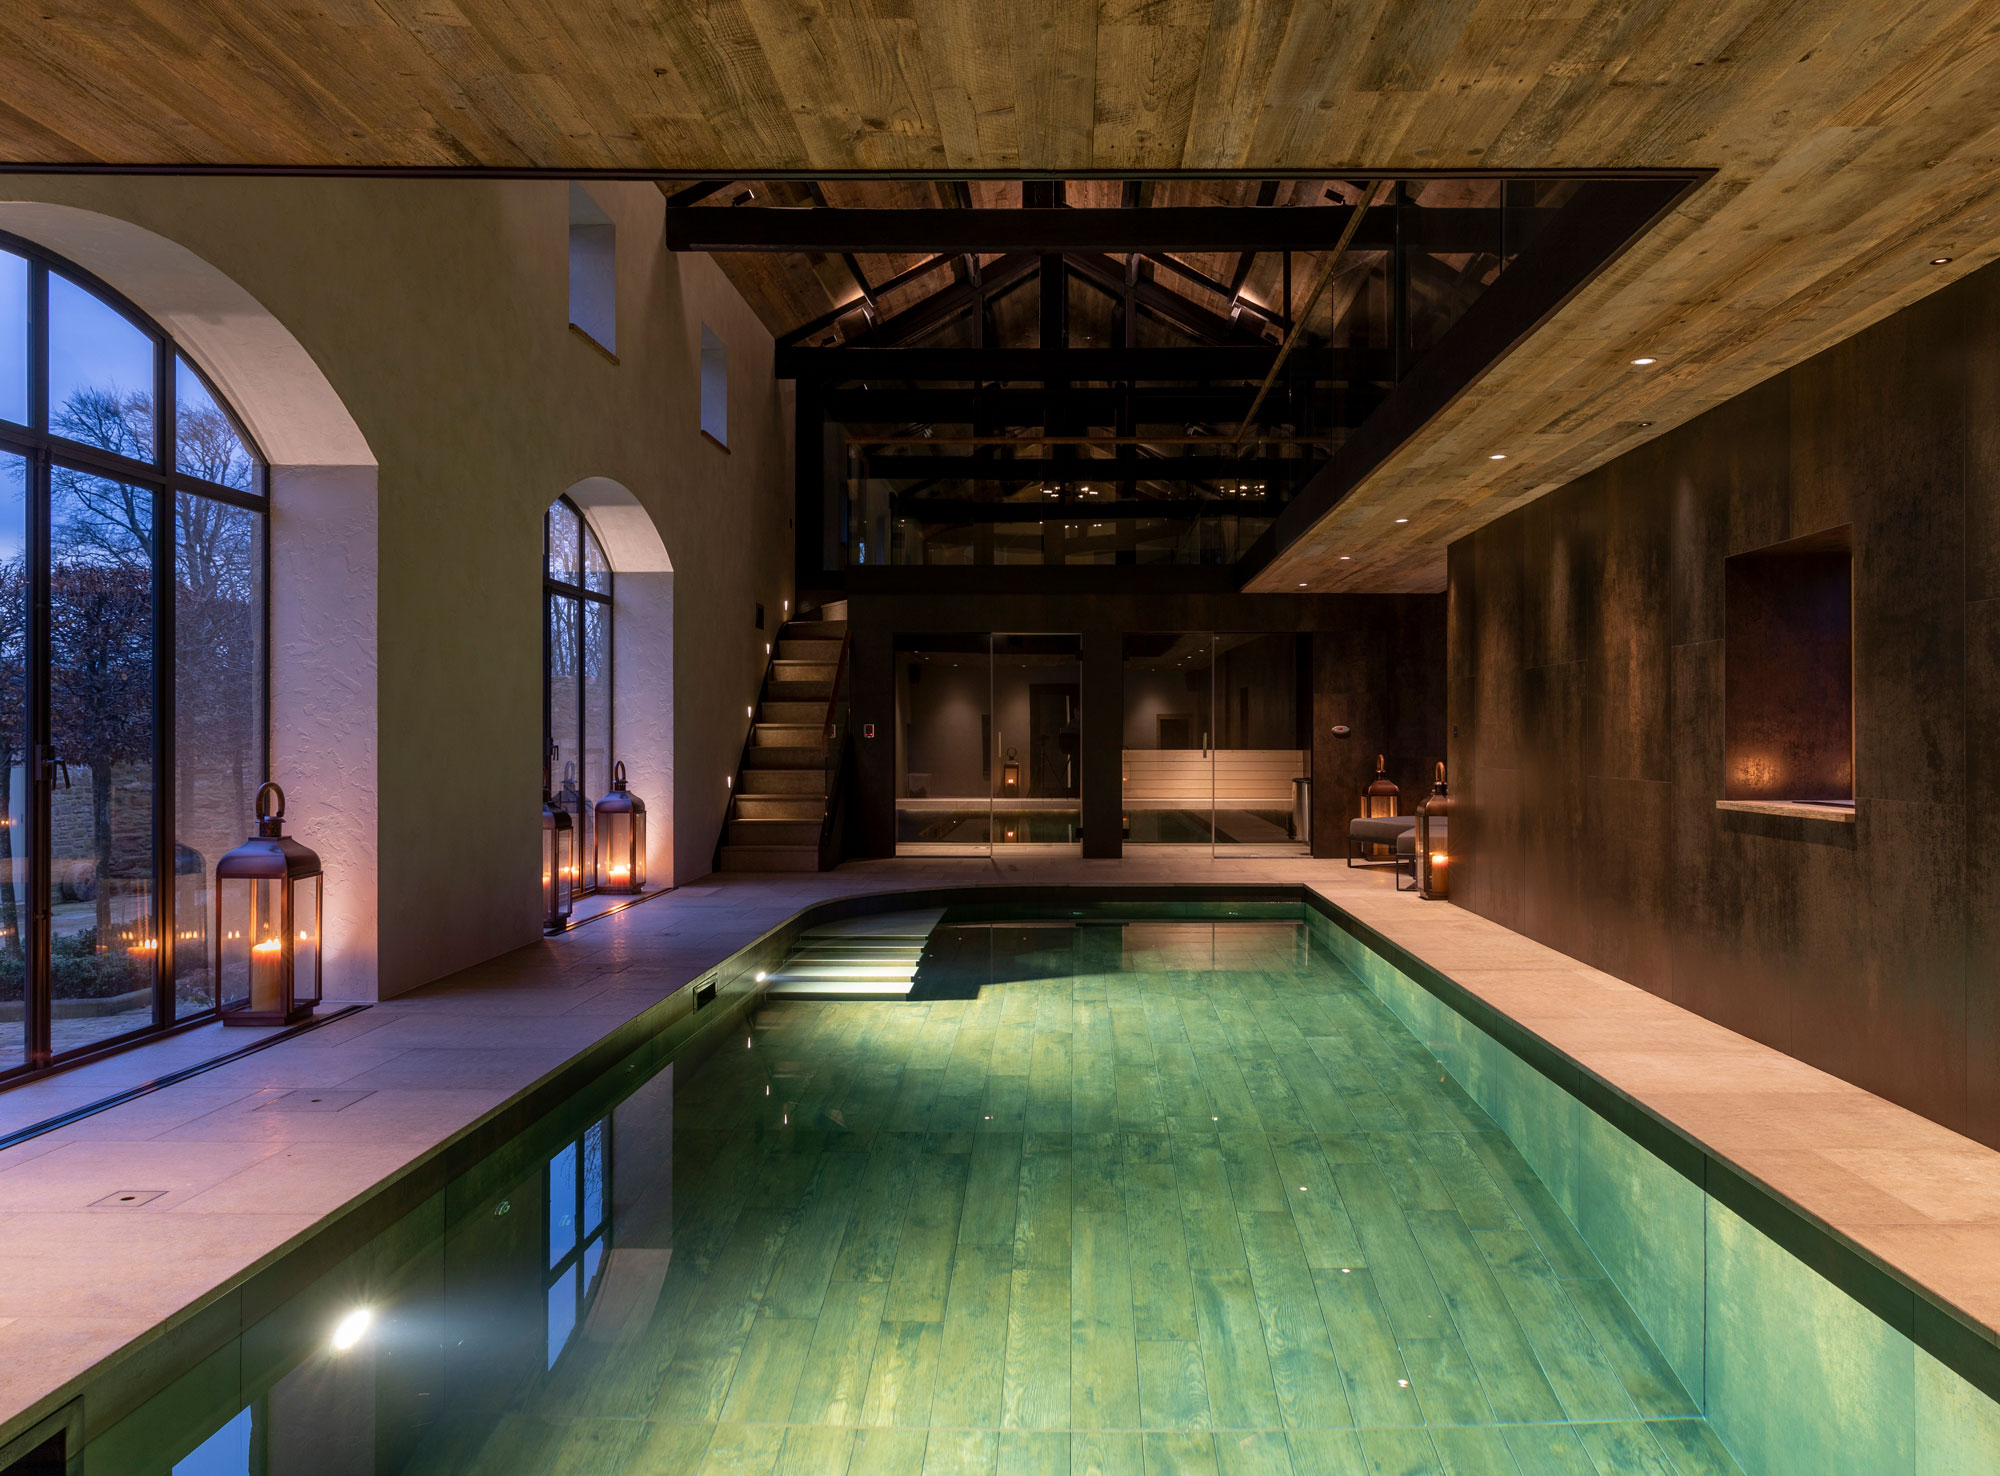 Indoor swimming pool at night with mood lighting and large cream tiles